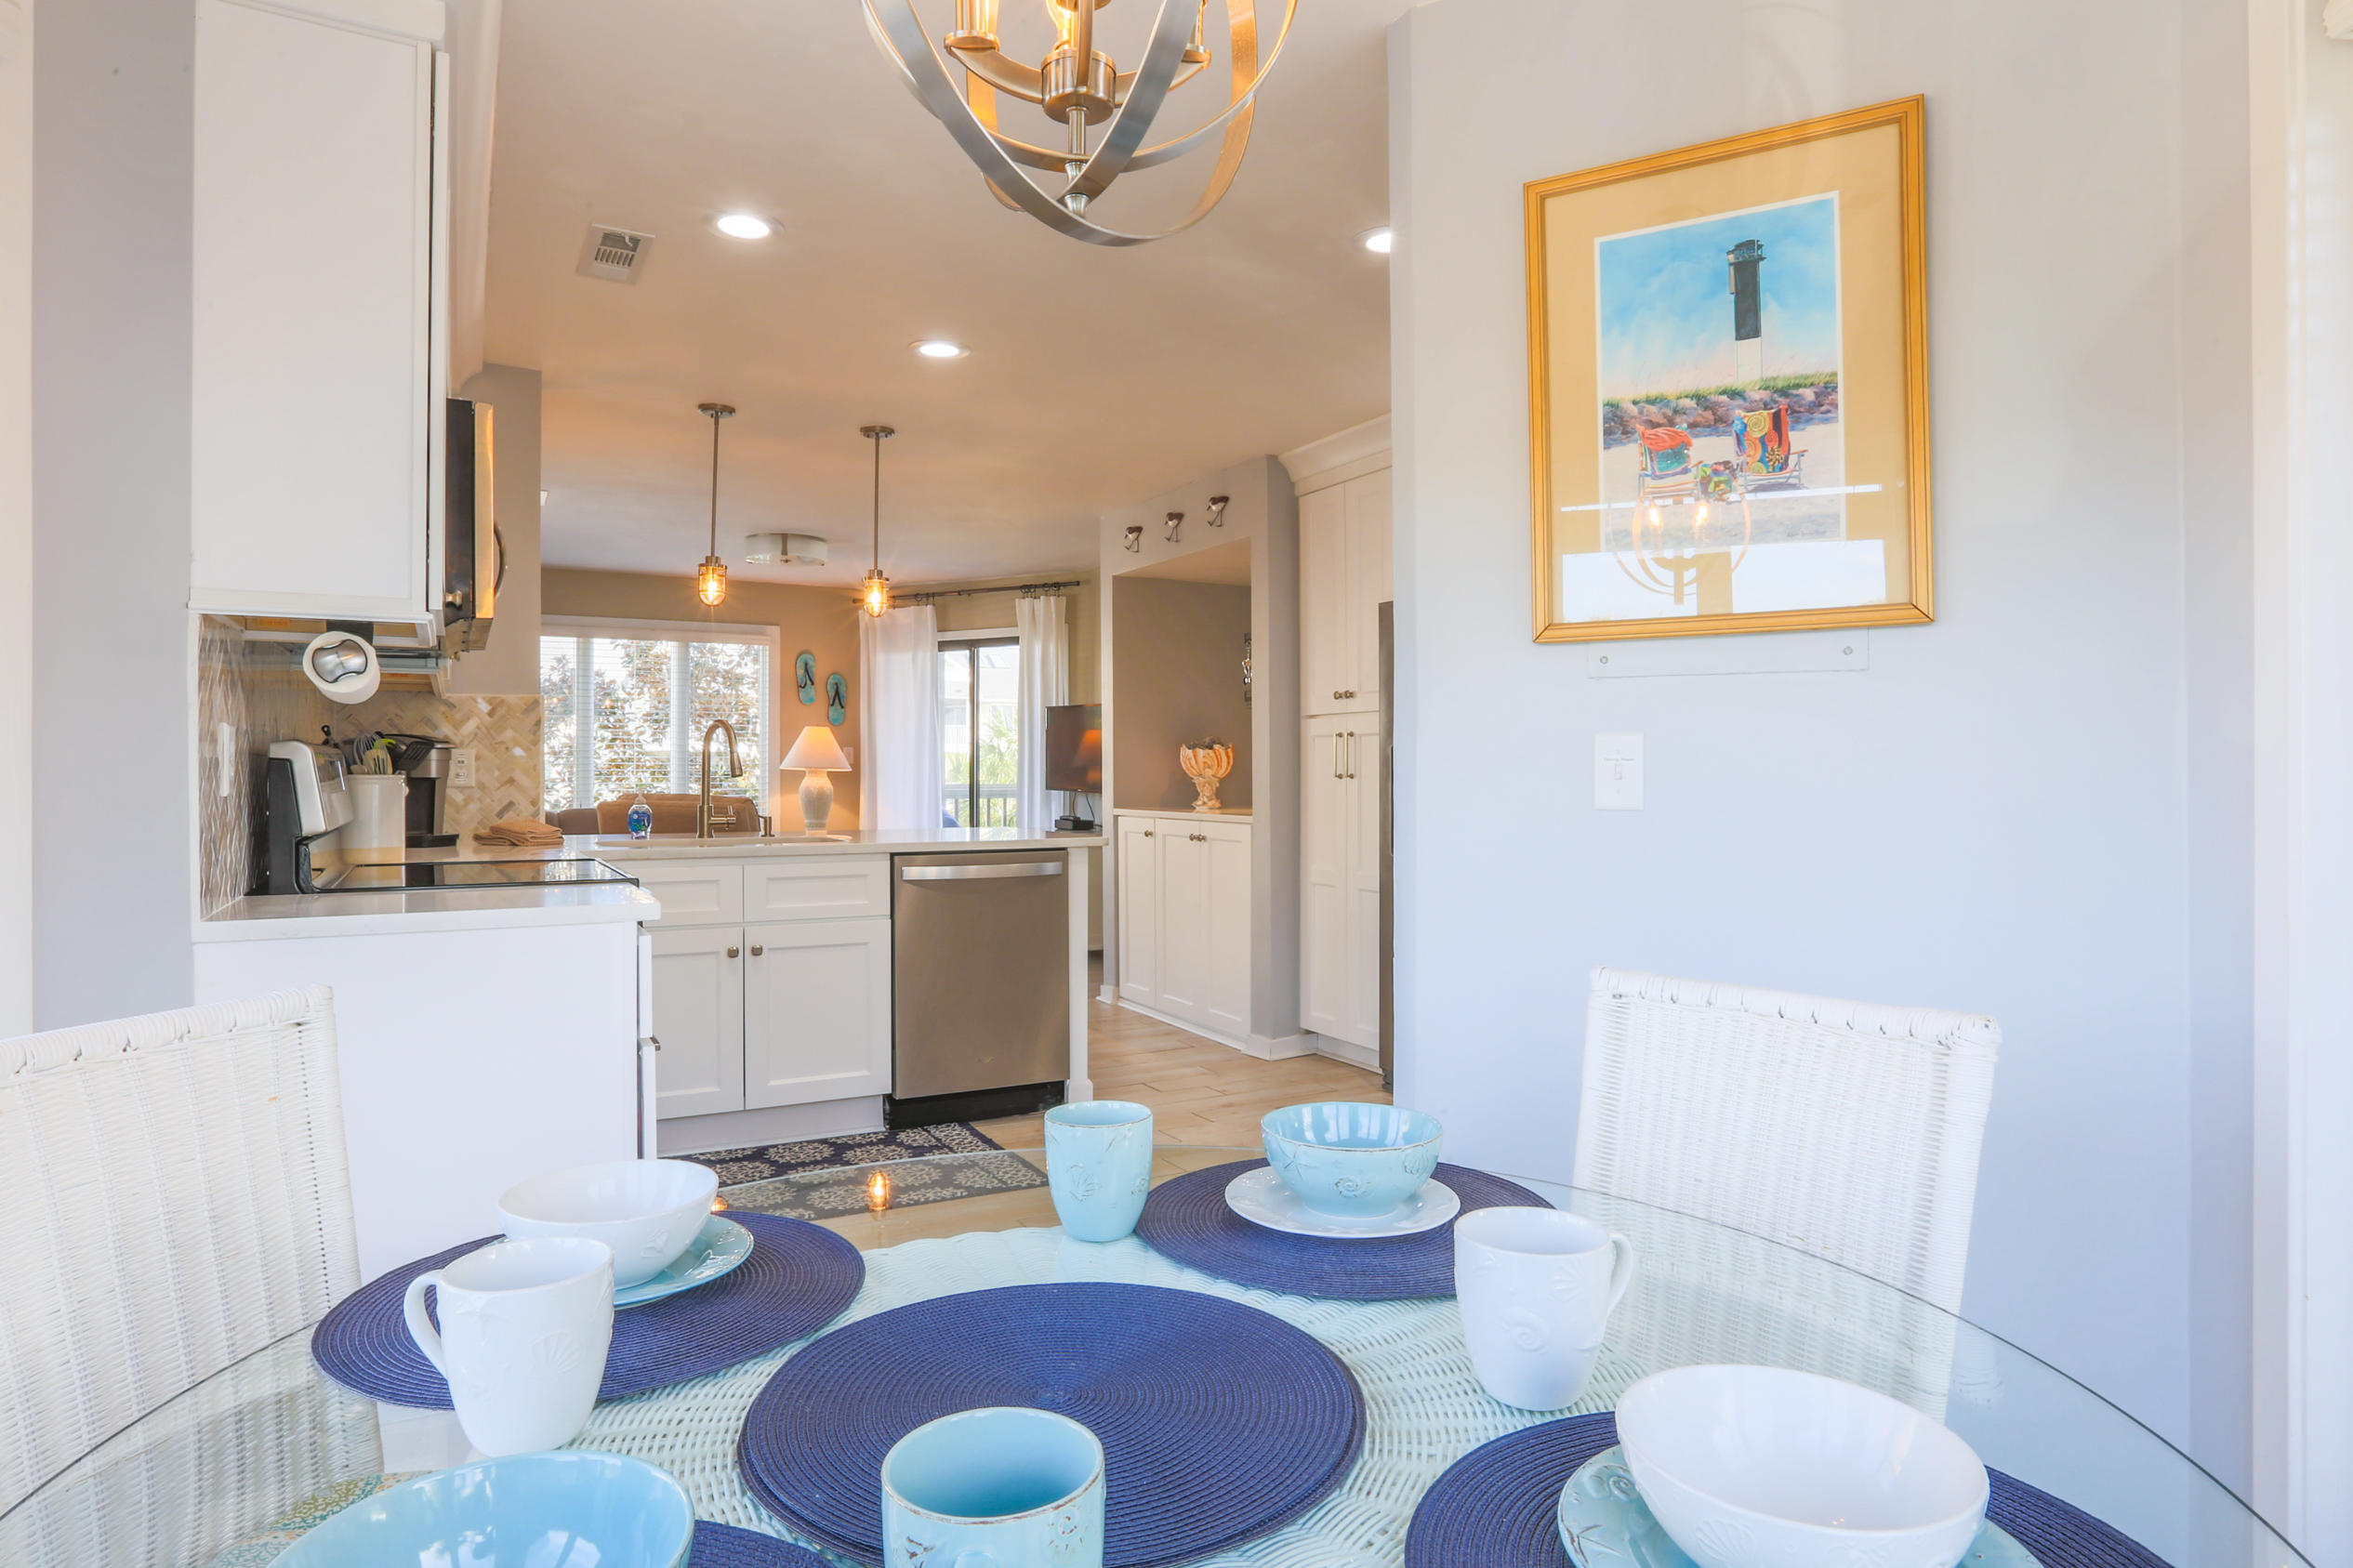 Wild Dunes Homes For Sale - 204-I Tidewater, Isle of Palms, SC - 10